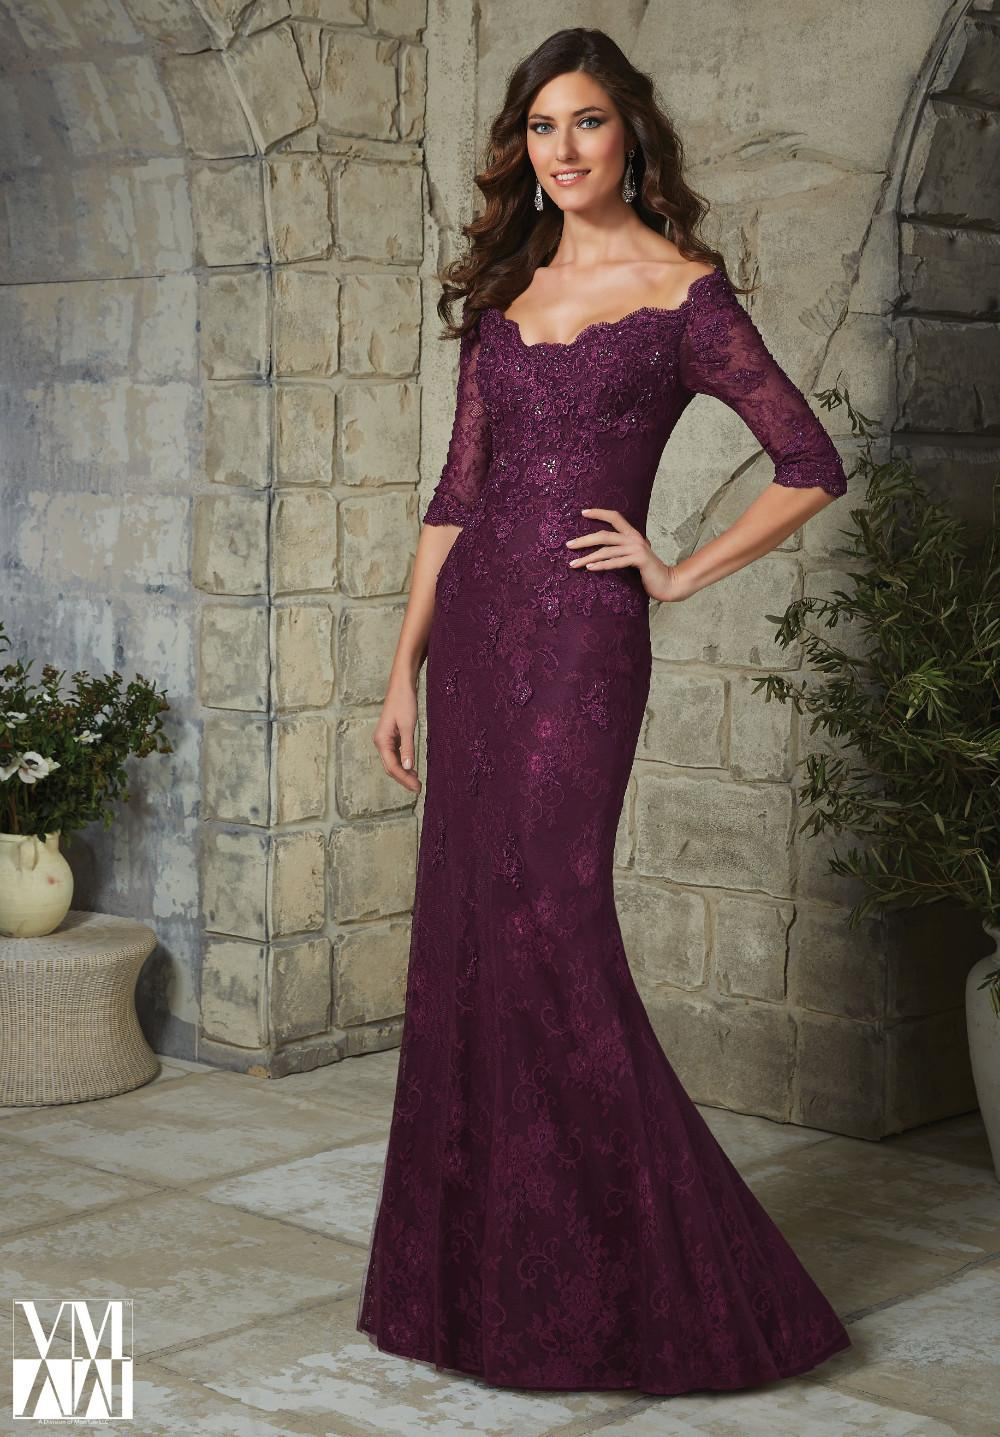 Elegant Plus Size Half Sleeve Plum Lace Mother Of The Bride Dresses 2018  For Weddings Appliques Beading Mermaid Evening Dress Dresses For Women Lace  ...